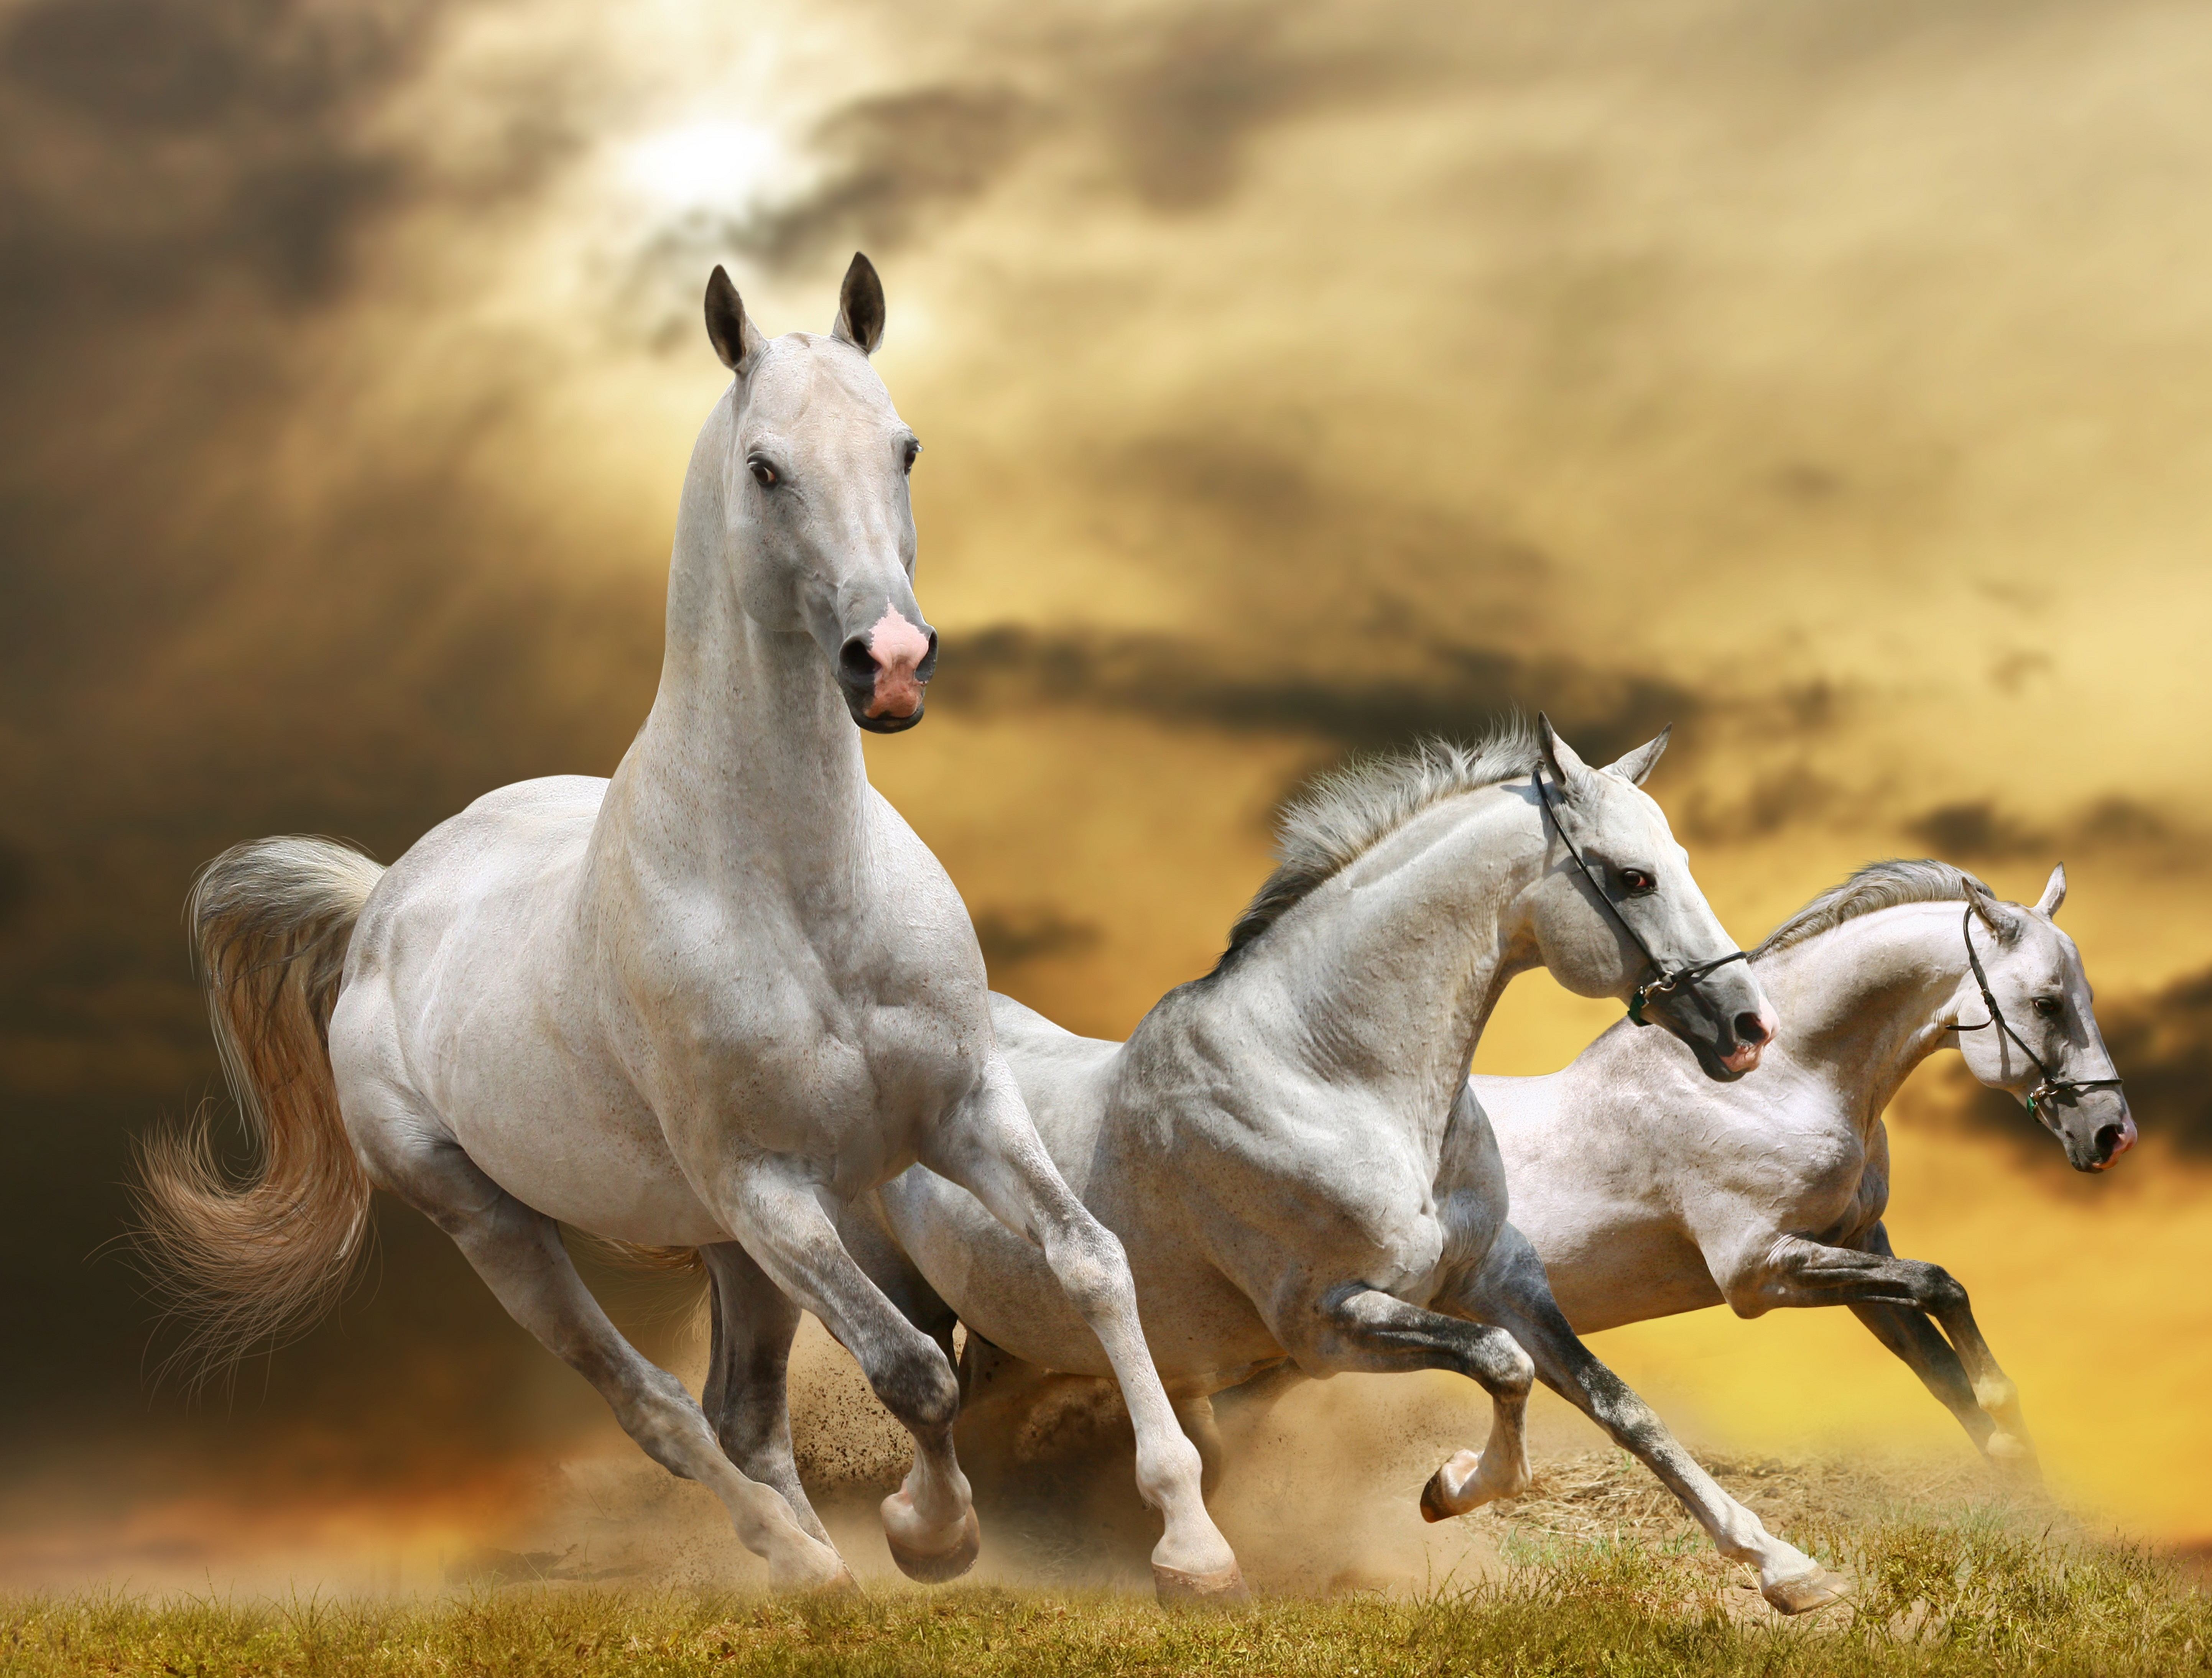 86465 download wallpaper Horses, Animals, Grass, Sky, Dust, Freedom, Run, Running screensavers and pictures for free